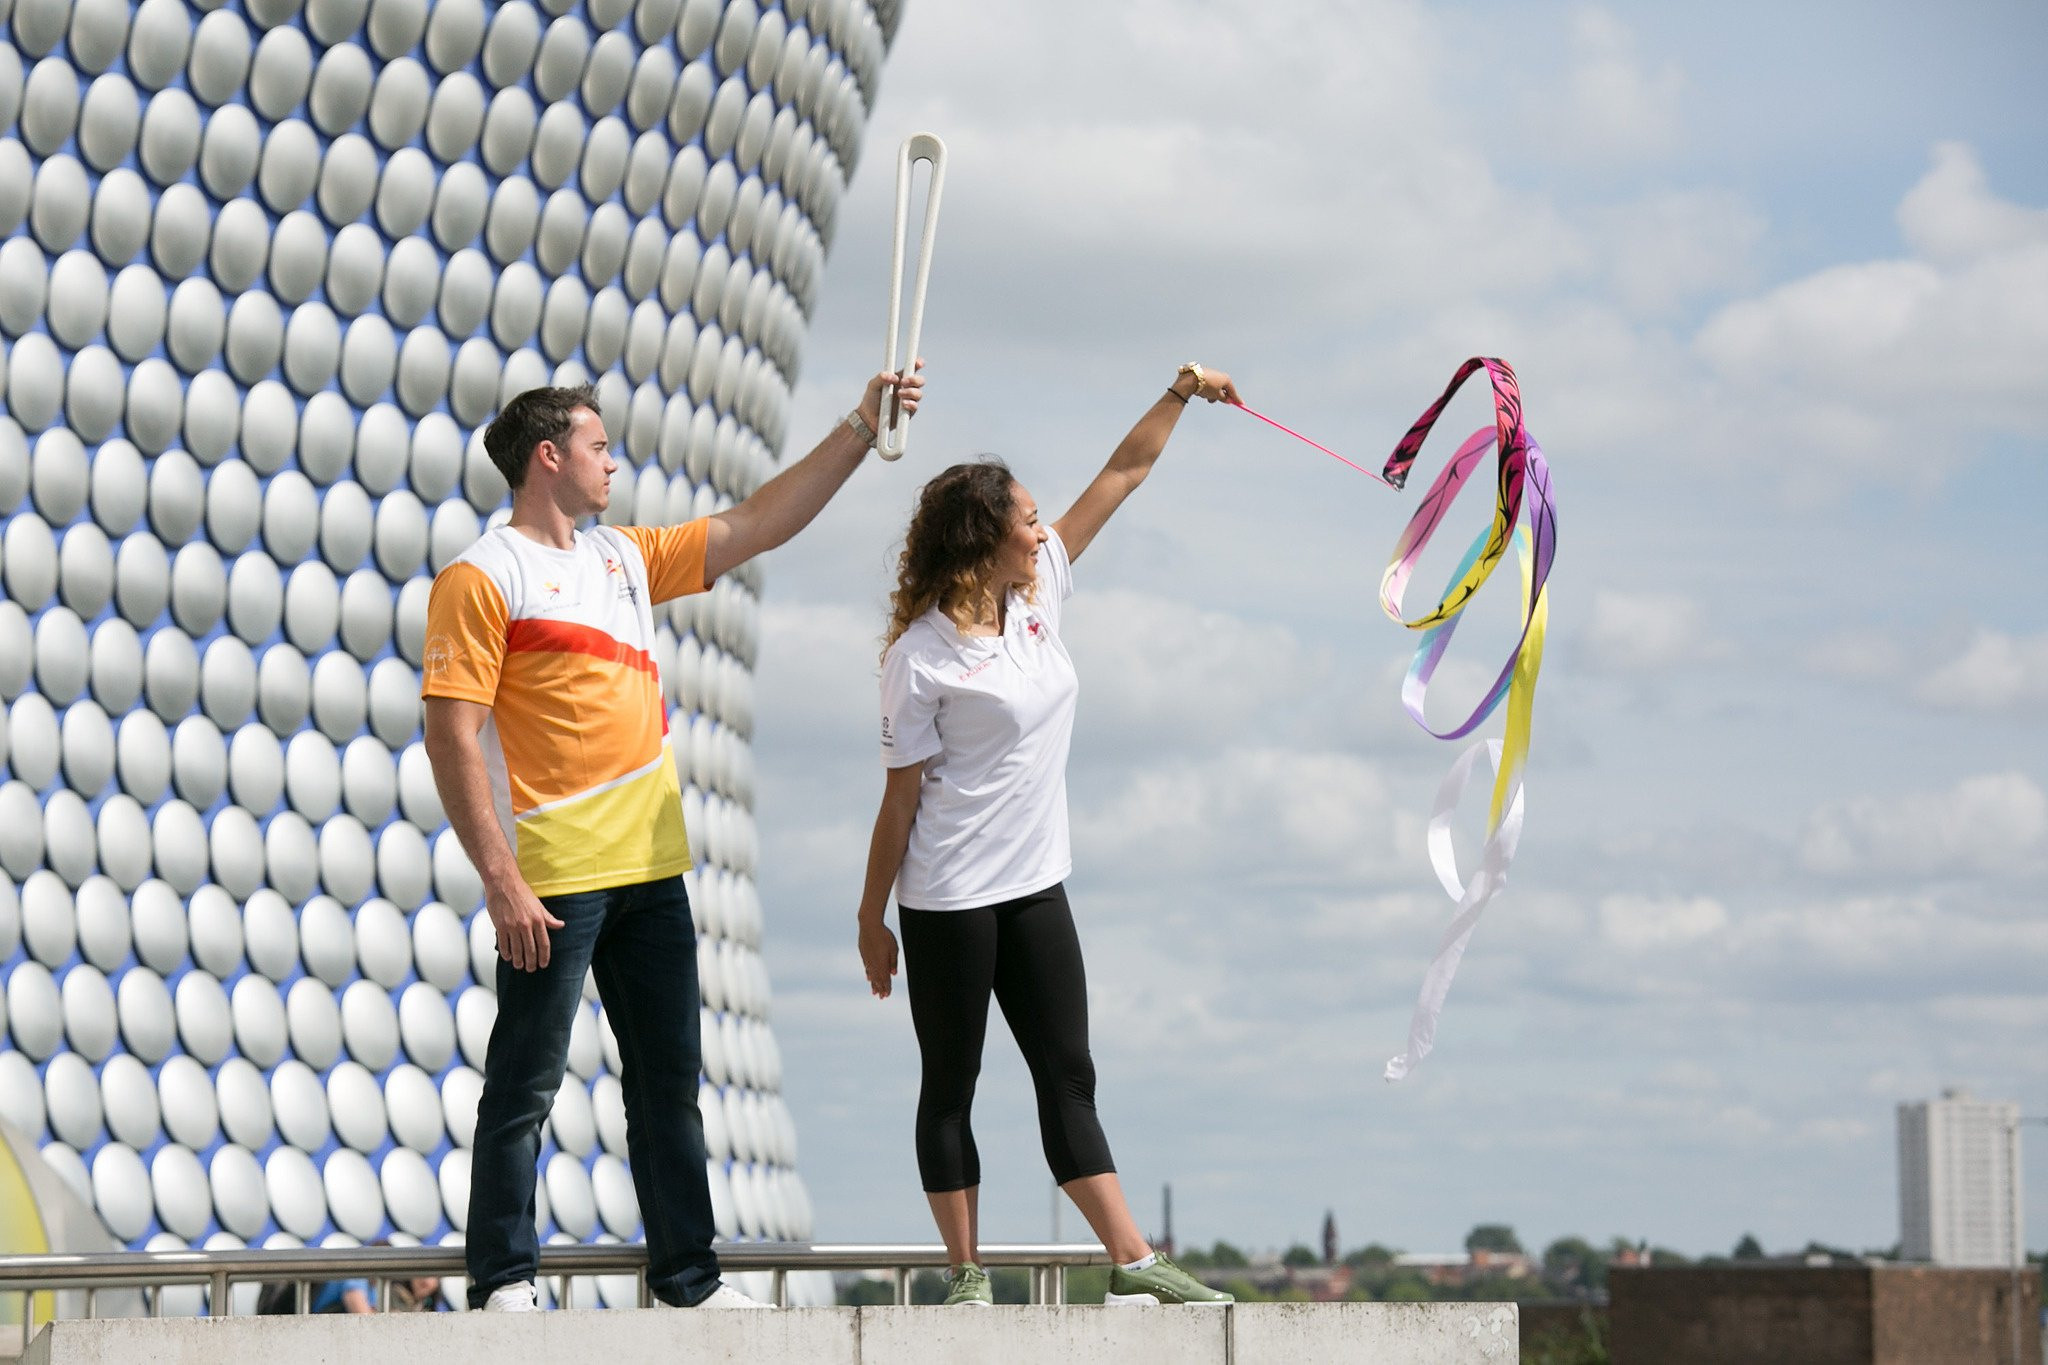 Birmingham will host the 2022 Commonwealth Games and hopes that the event will bring economic benefits ©Birmingham 2022/Twitter